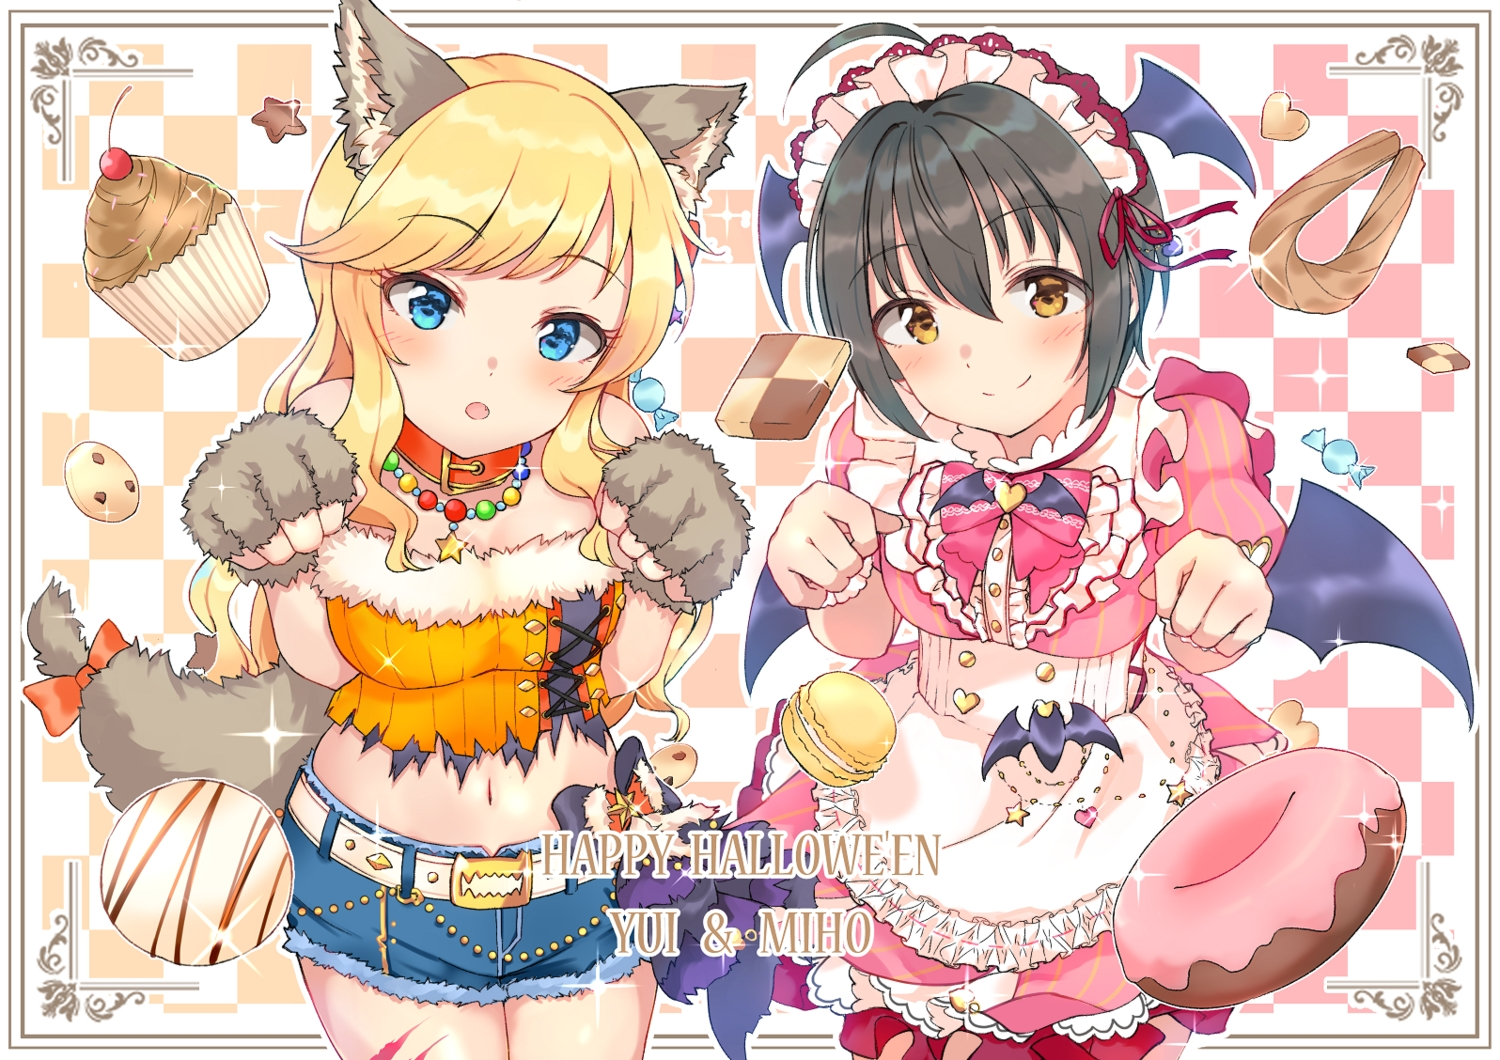 2girls animal_ears apron black_hair blue_eyes blush bow brown_eyes candy cherry dress food fruit gloves headdress idolmaster idolmaster_cinderella_girls kohinata_miho lolita_fashion long_hair maid necklace ootsuki_yui ribbons shiitake_taishi shorts tail waitress wings wolfgirl